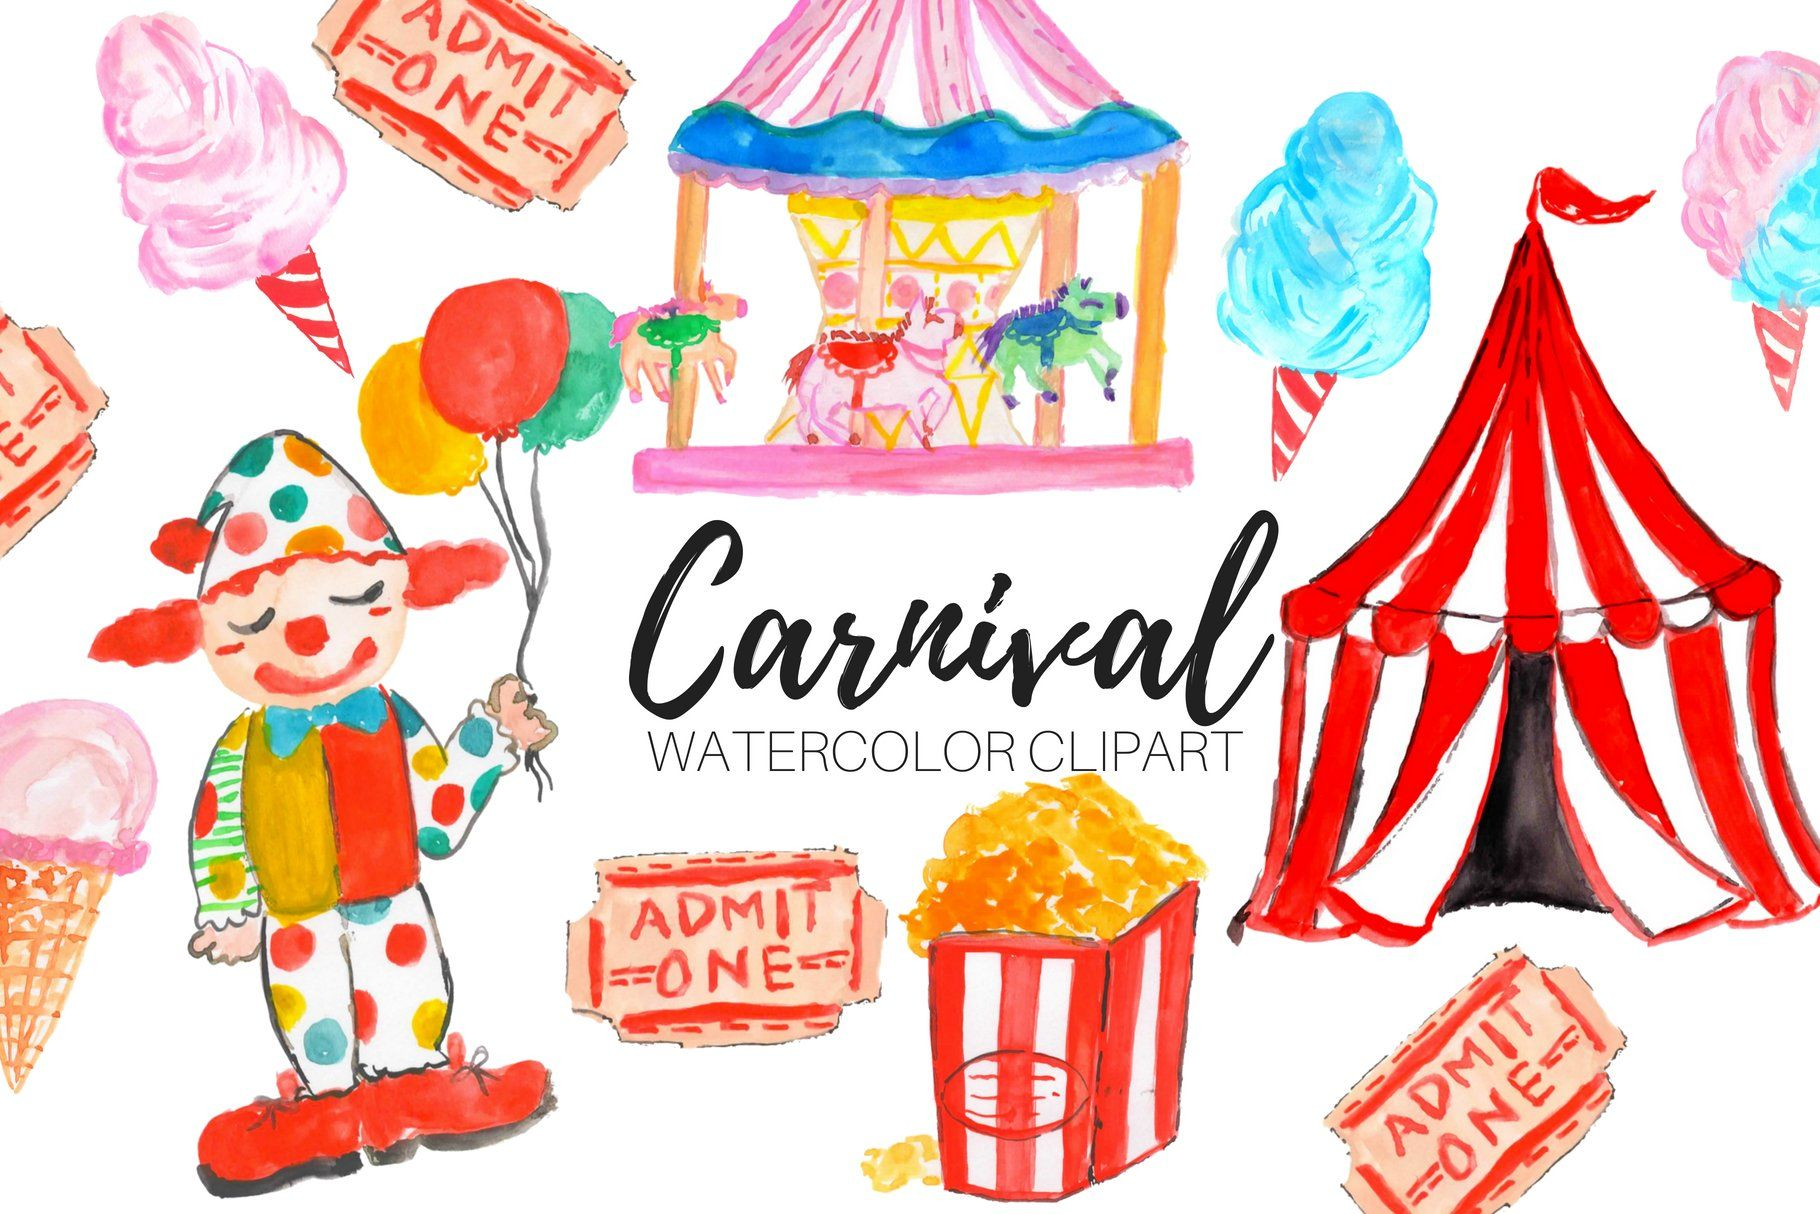 Watercolor Carnival Clipart #Ad , #SPONSORED, #transparent.